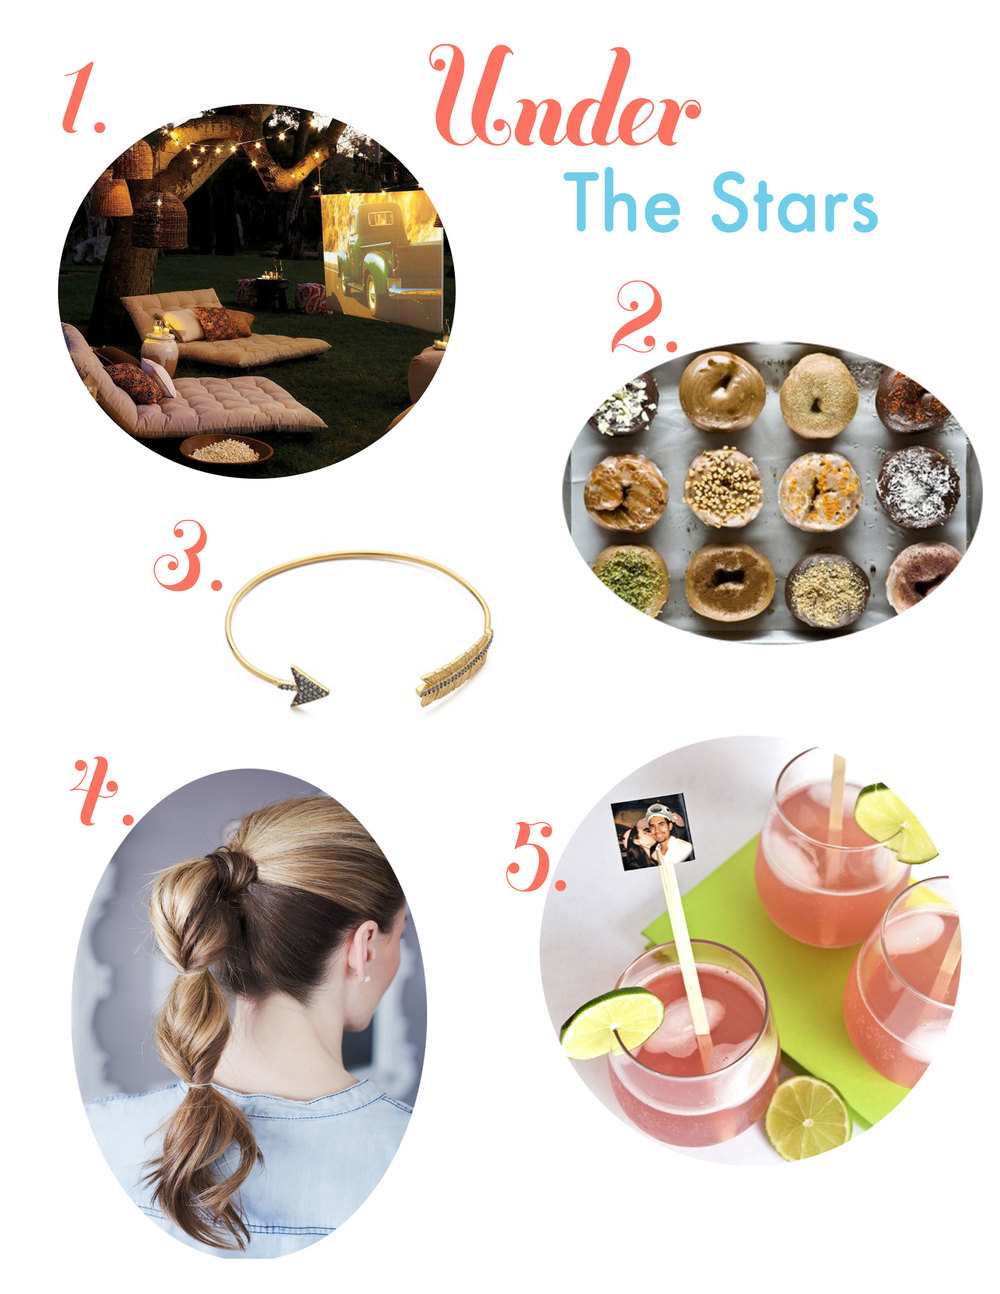 Philadelphia movies, federal donuts, arrow bracelet, DIY drink stir